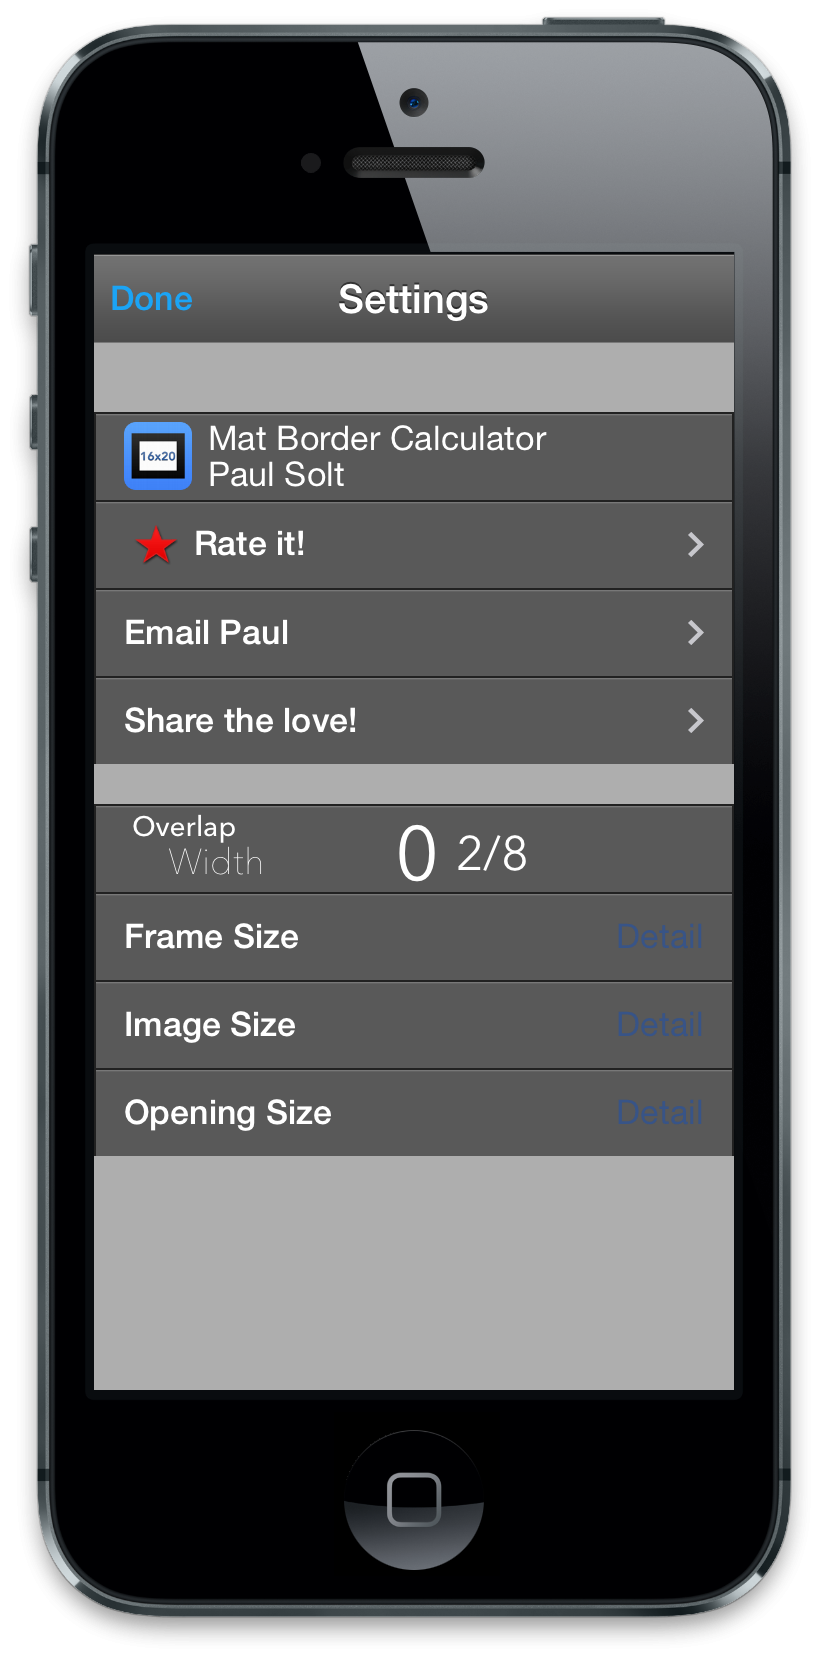 Mat Border Calculator for iPhone - image 4 - student project